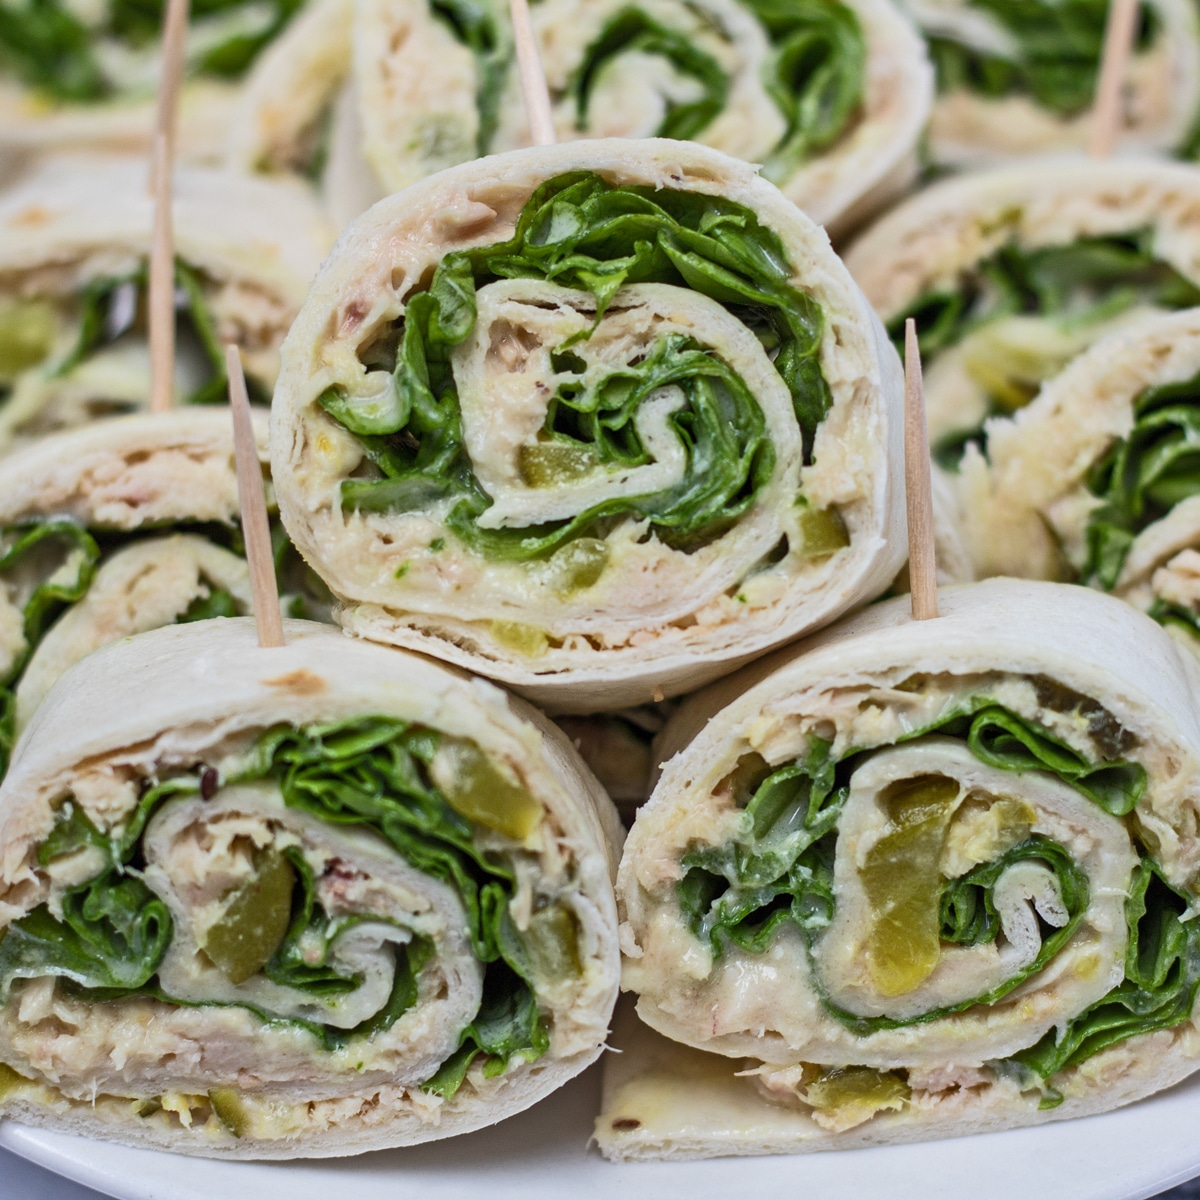 Tuna salad pinwheel sandwiches cut and stacked on plate.